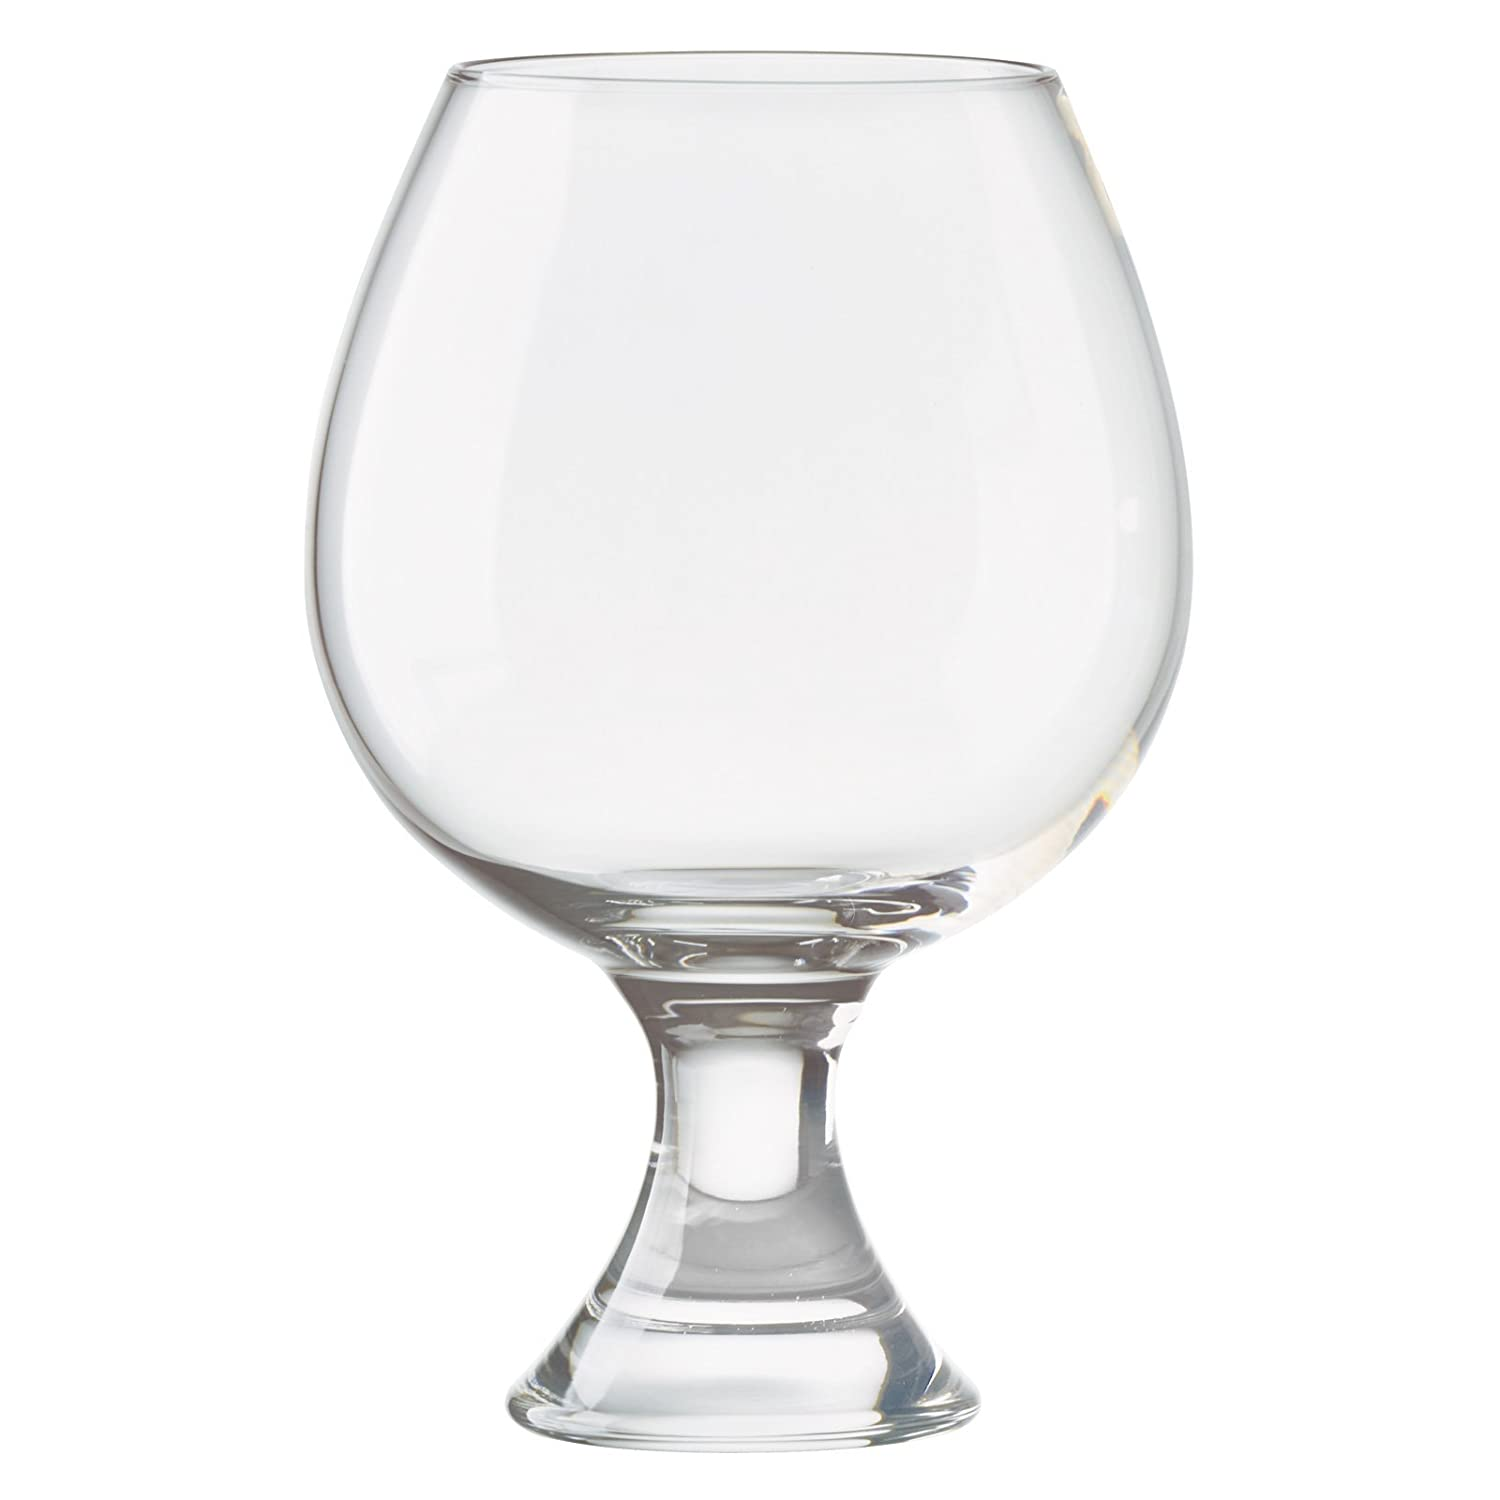 Anton Studio Designs Manhattan Brandy Glasses, Clear, Set of 2 ASD10278